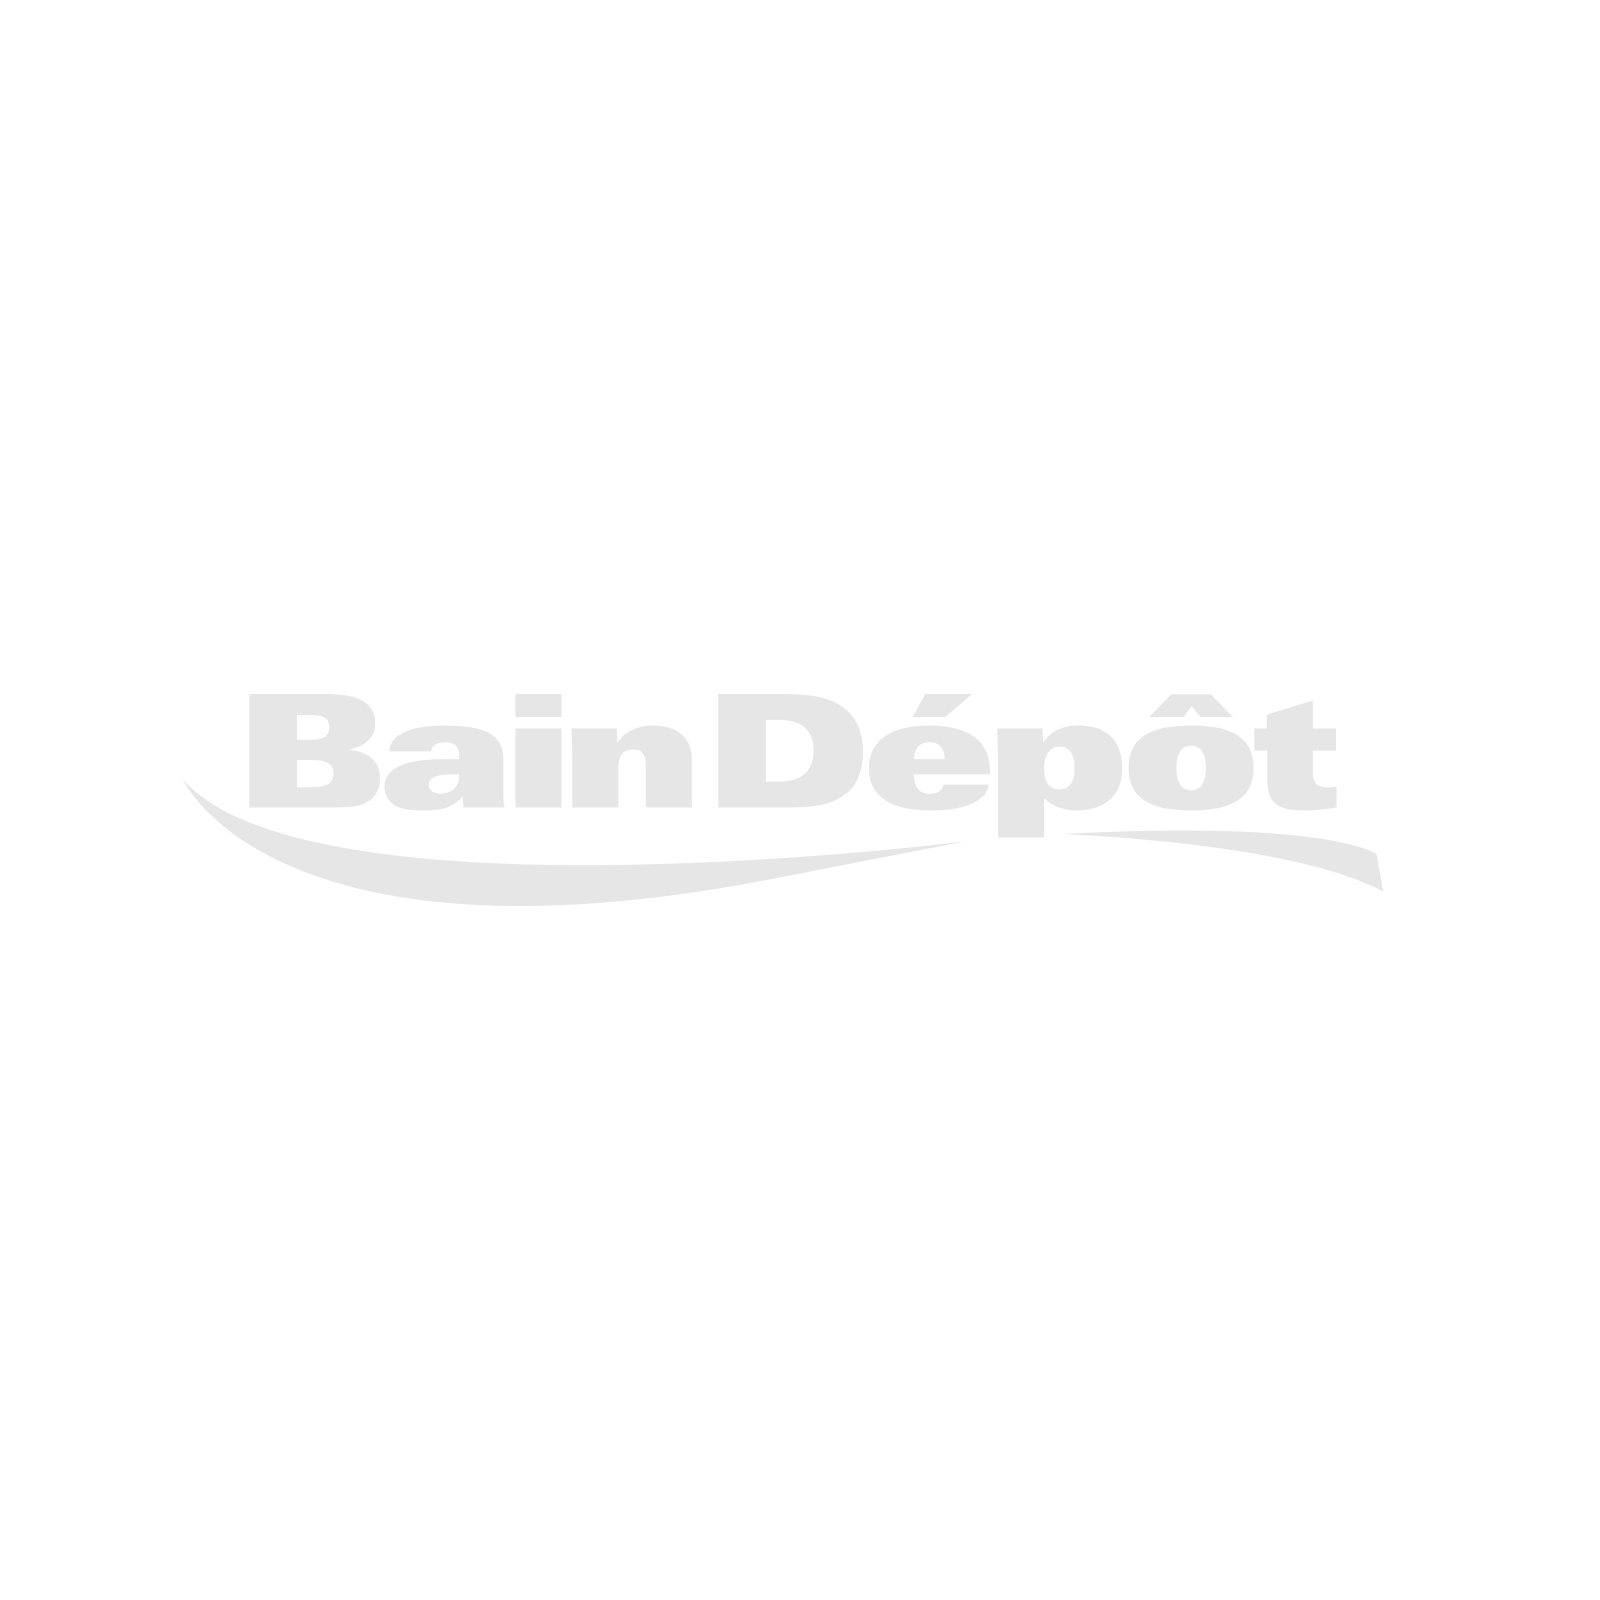 "Double undermount kitchen sink 32"" x 18"" x 10"" with grids"